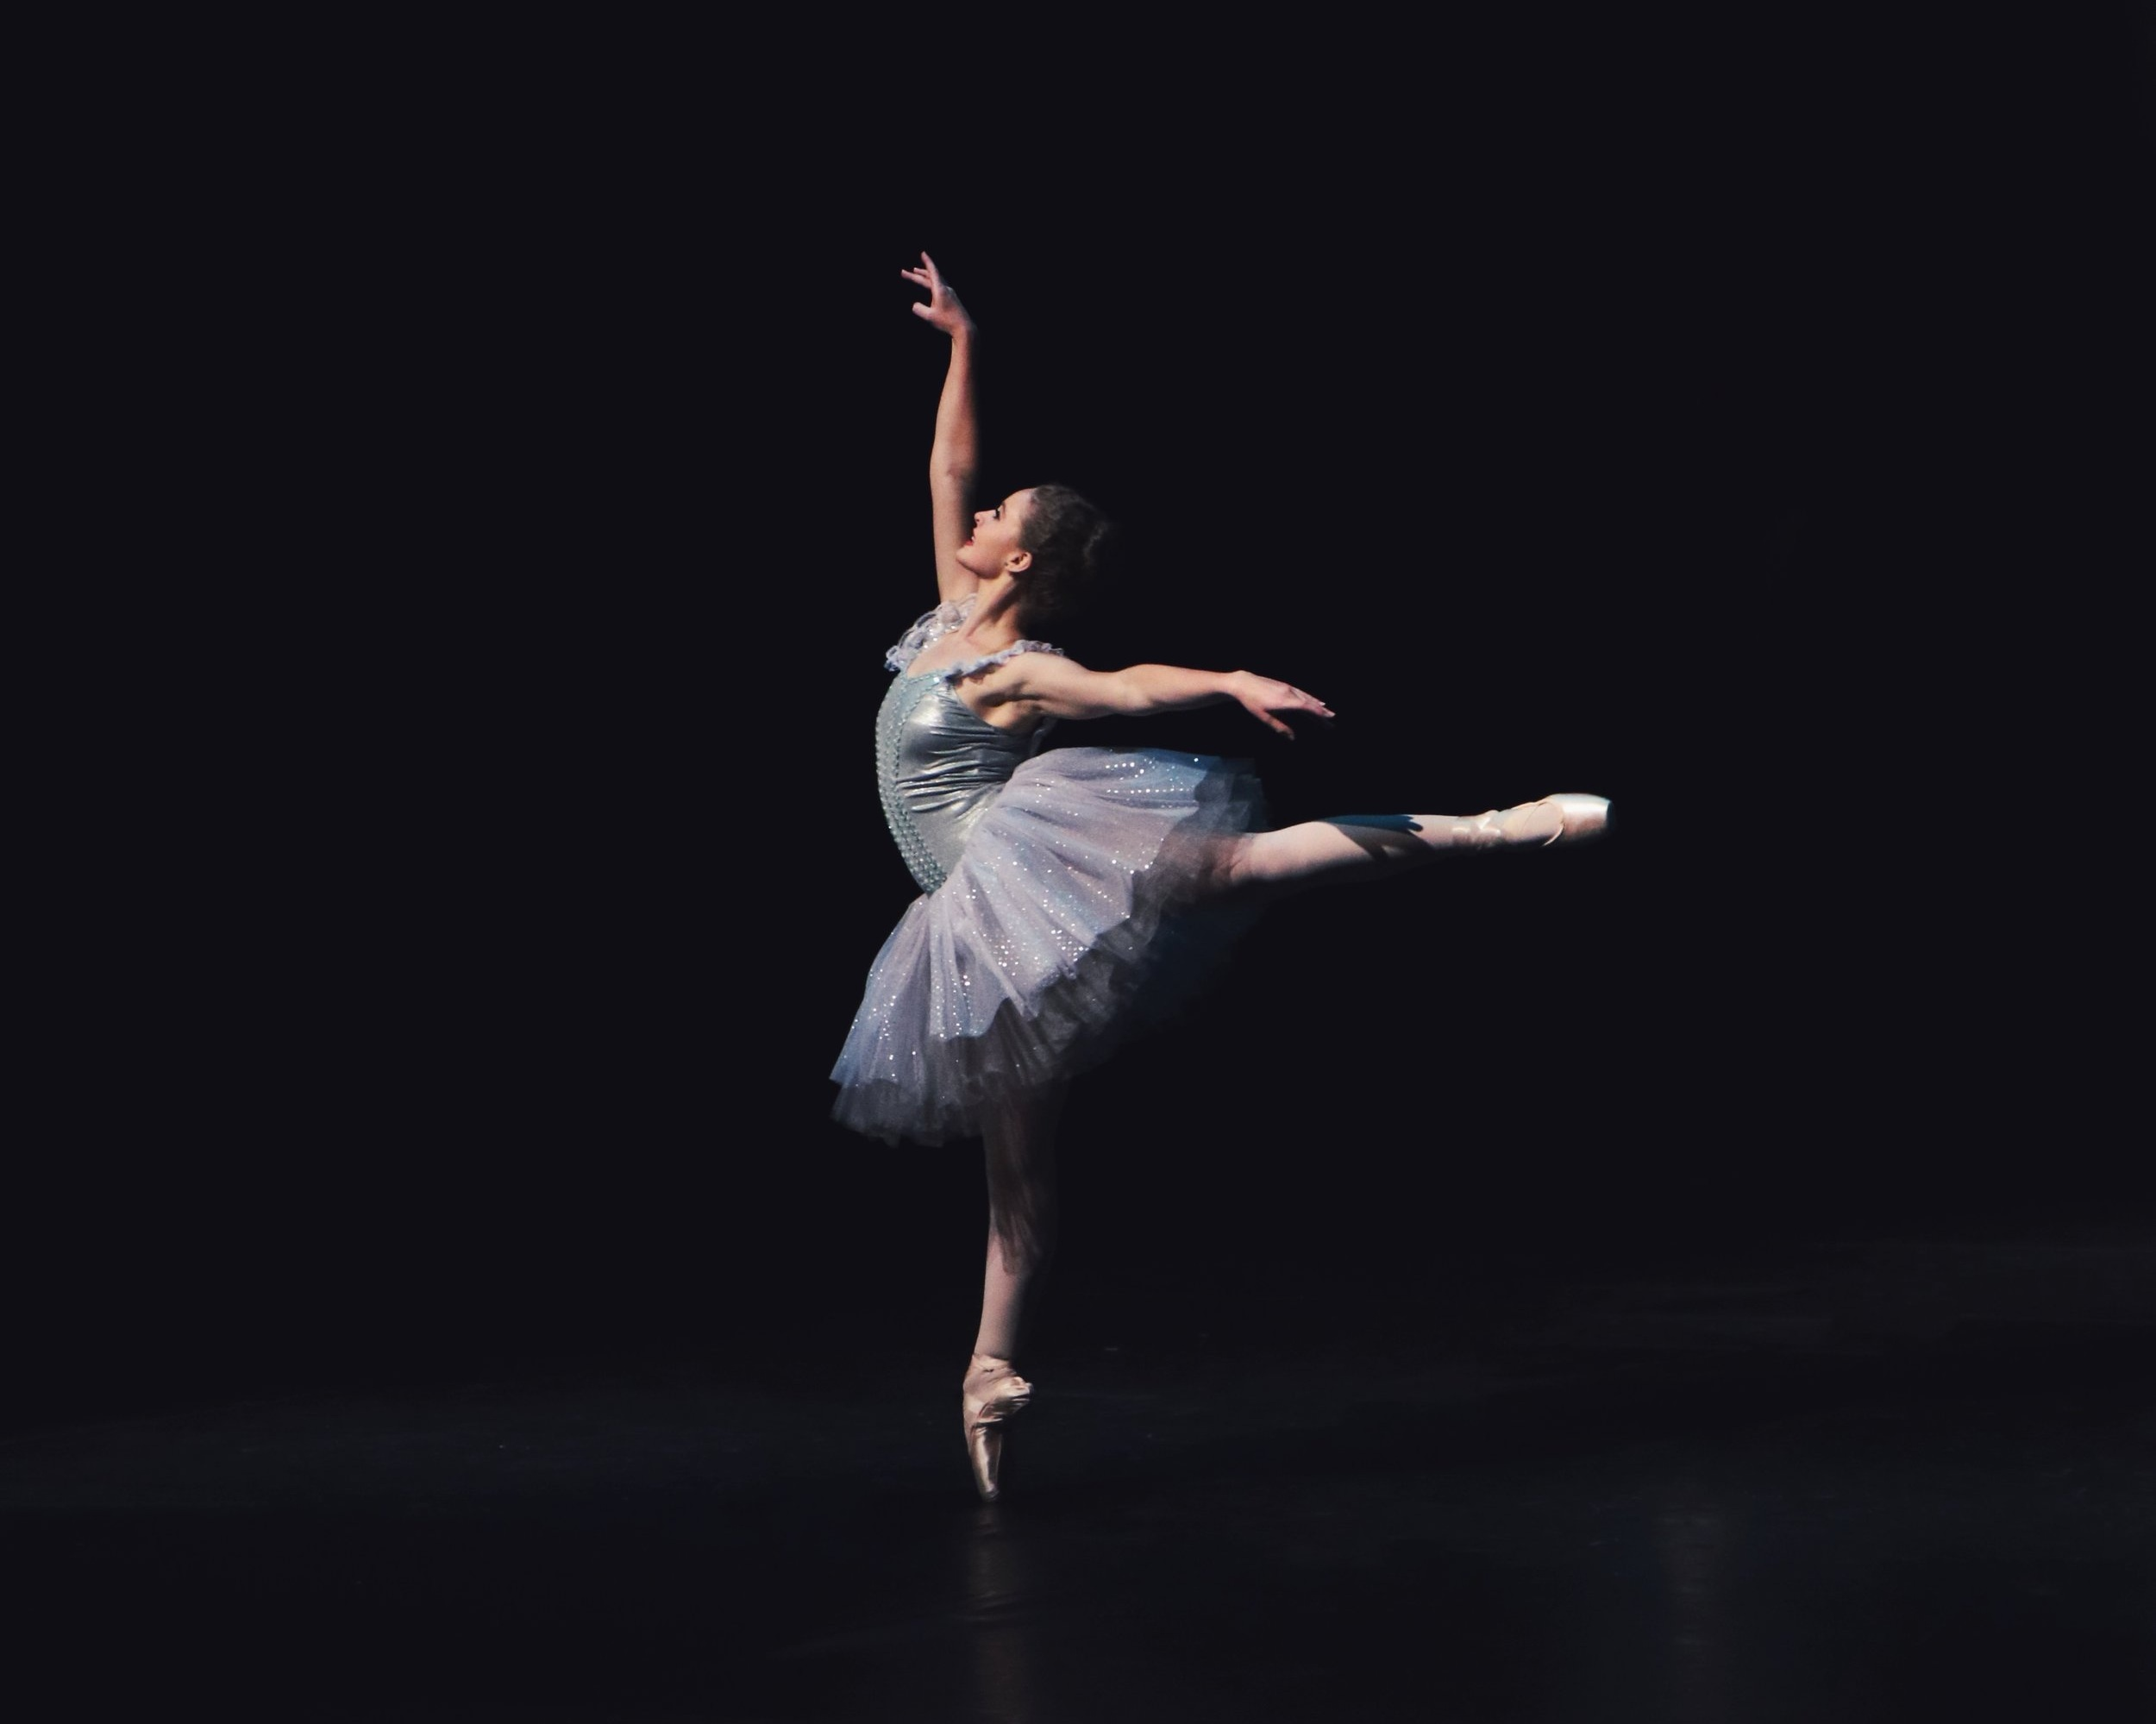 pre-academy YOUTH BALLET - Our Pre-Academy program allows young dancers to refine their technique in preparation for high level intensives located in Denver, NYC and beyond.Students will also take classes in music theory, theater and dance history.